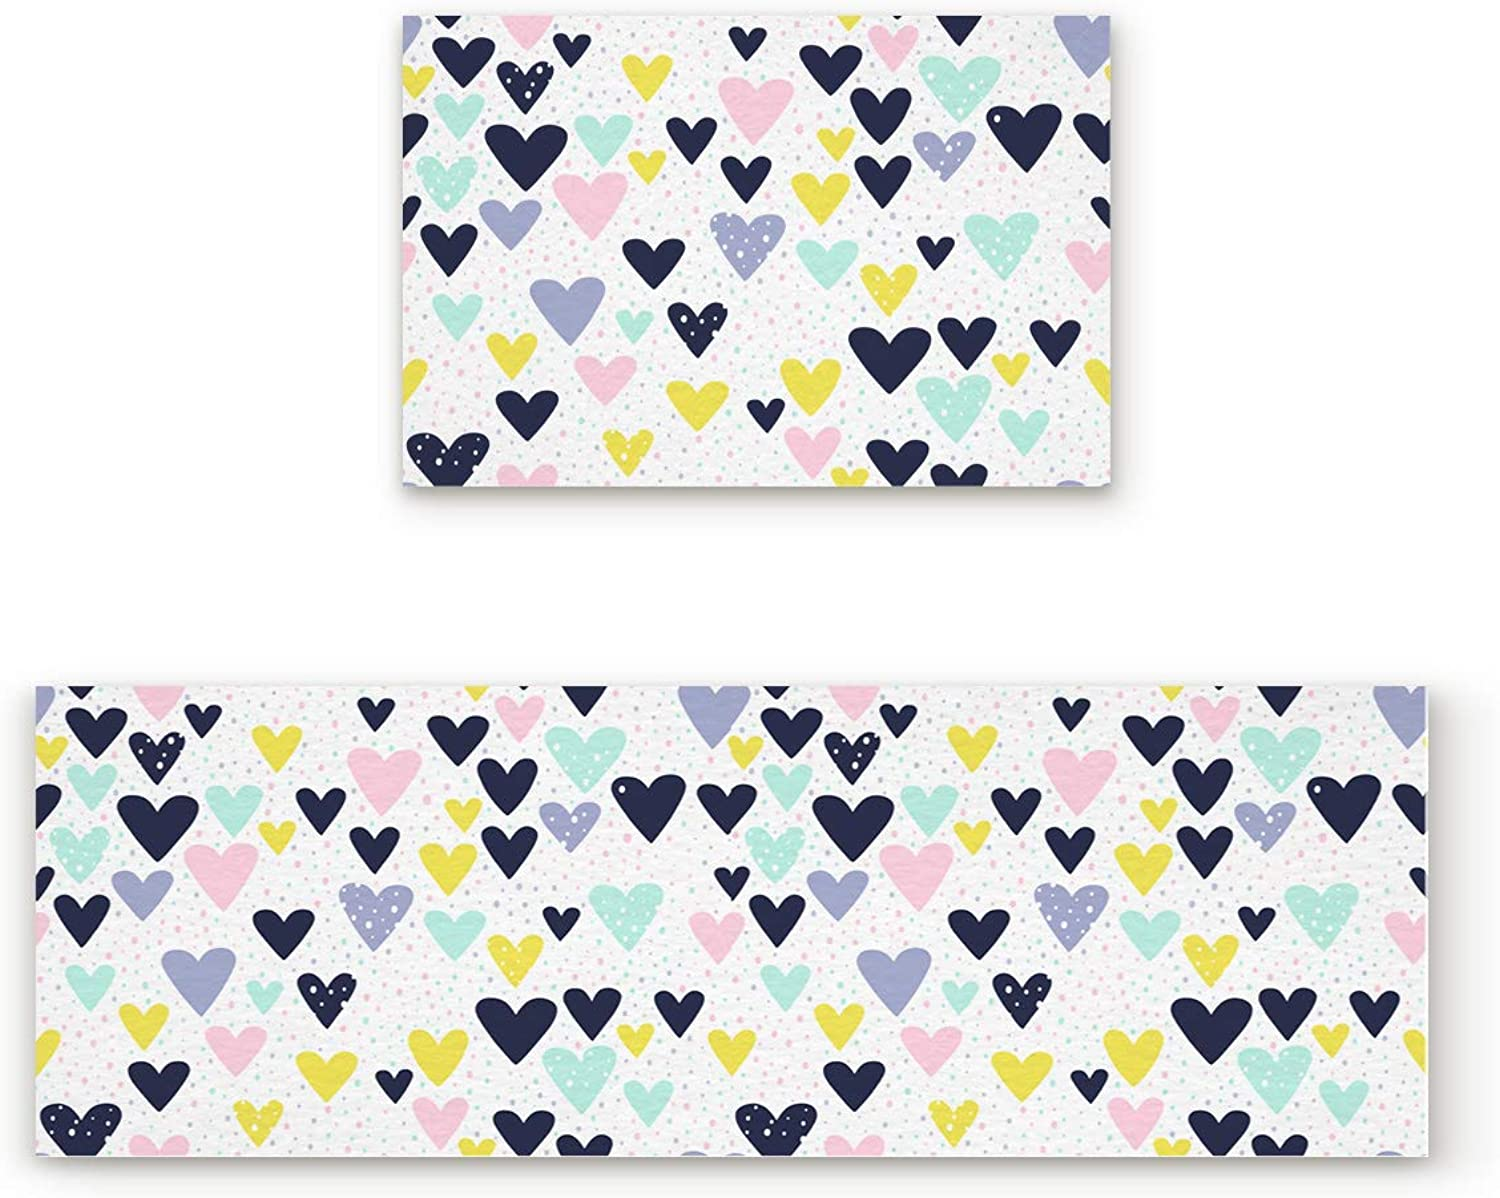 Libaoge Non-Skid Slip Rubber Backing Kitchen Mat Runner Area Rug Doormat Set, Hand Drawn color Hearts and Dots Print Carpet Indoor Floor Mats Door 2 Packs, 19.7 x31.5 +19.7 x47.2